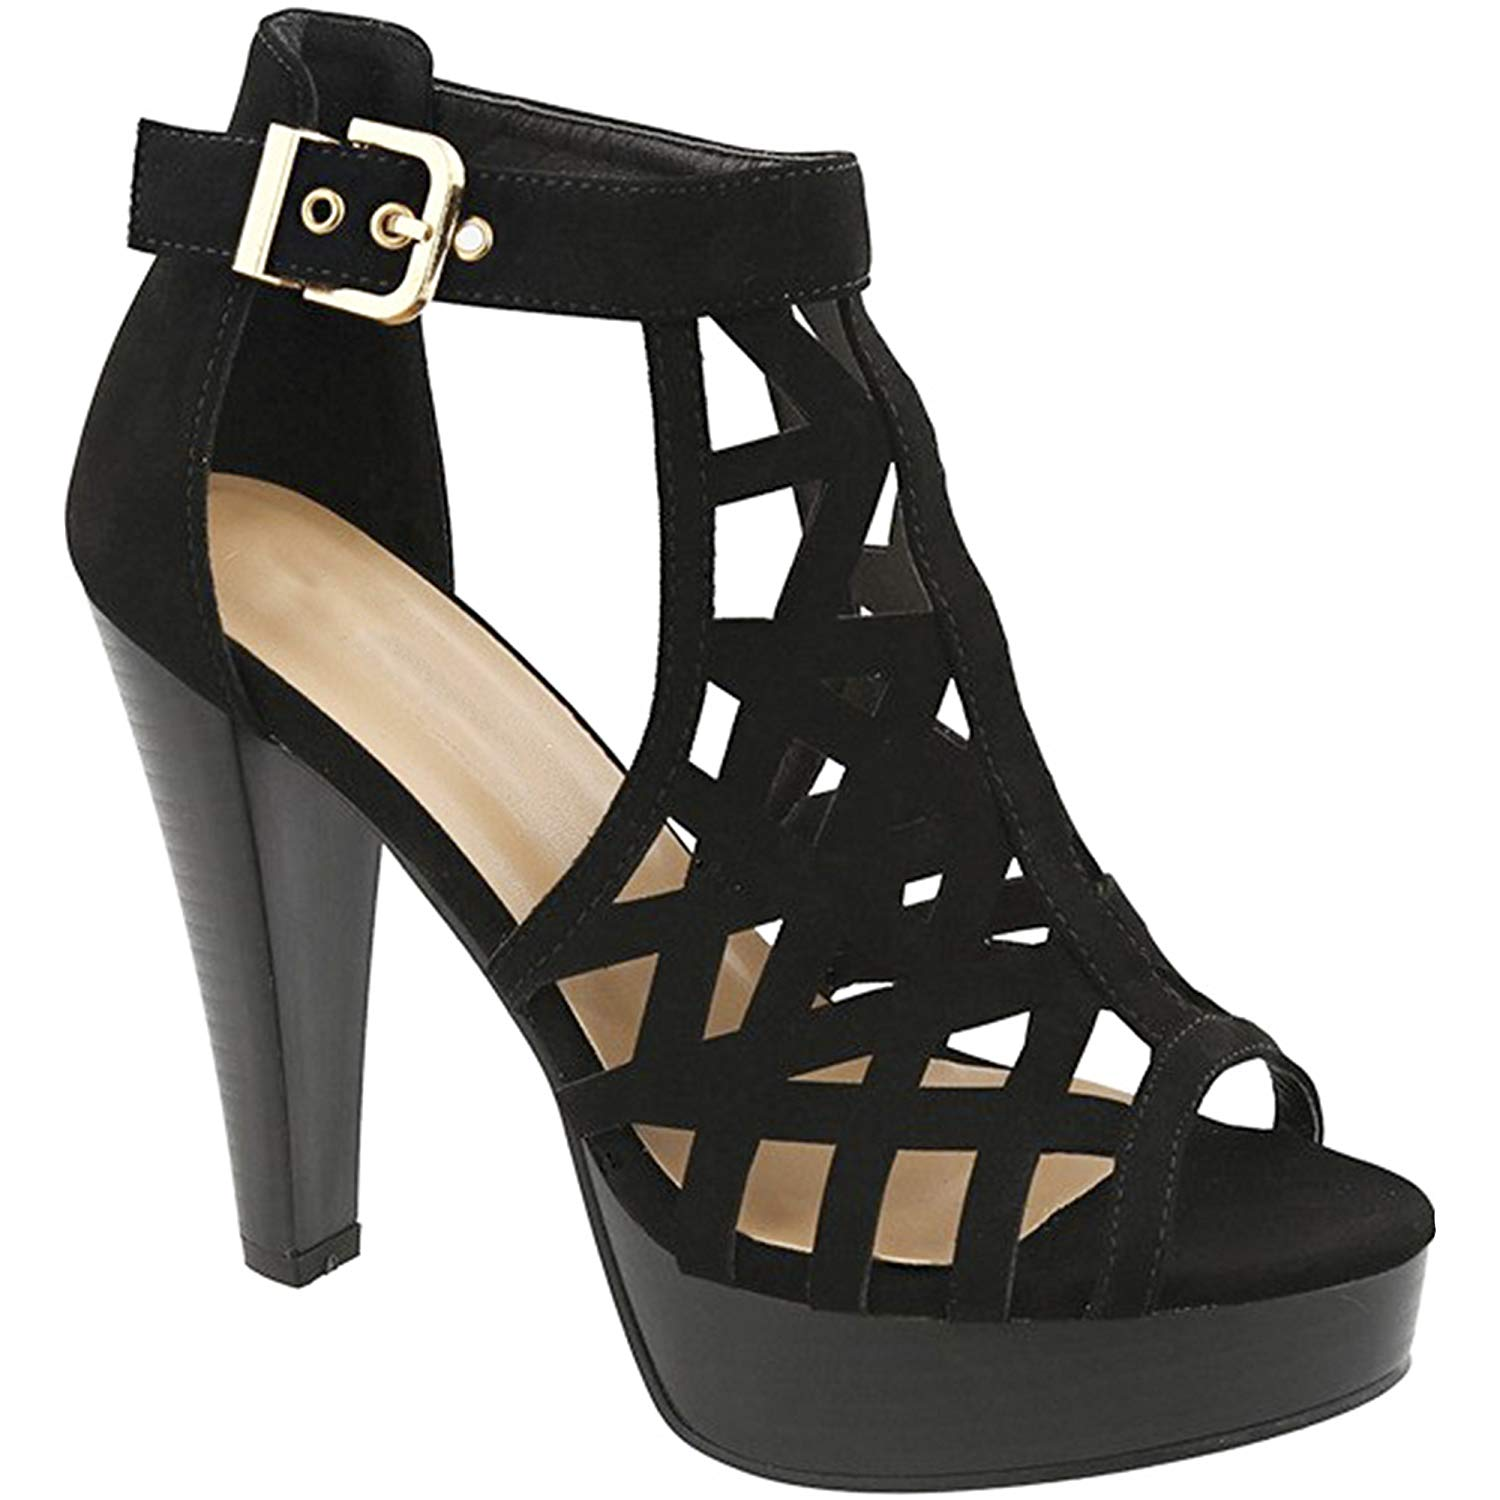 Women's Peep Toe Ankle Strap Cut Out Platform Chunky High Heel